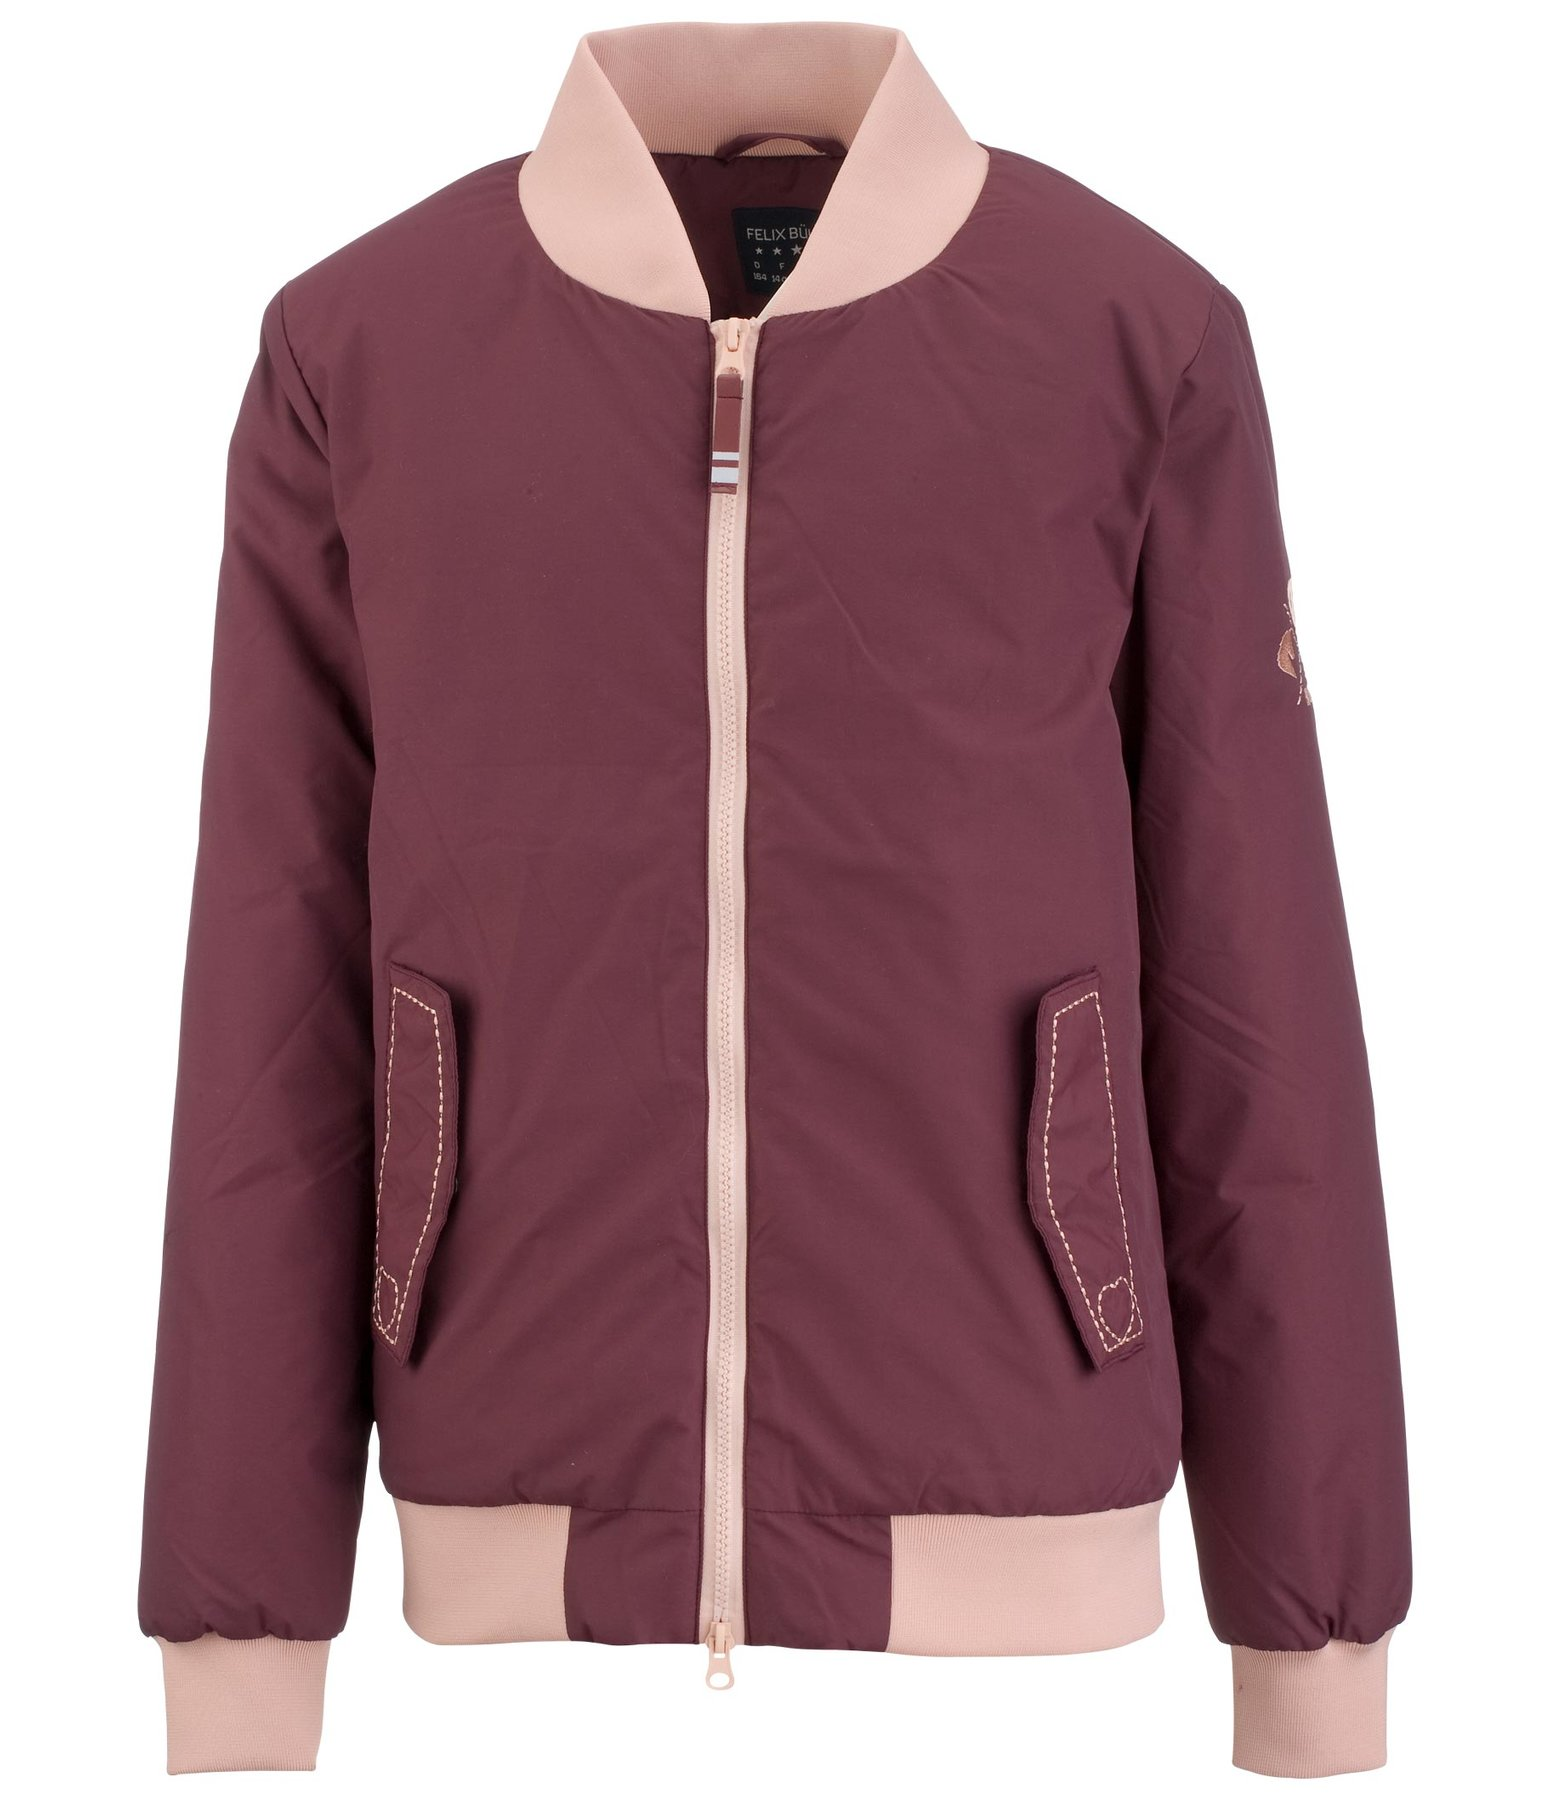 Children's Winter Riding Blouson Naila